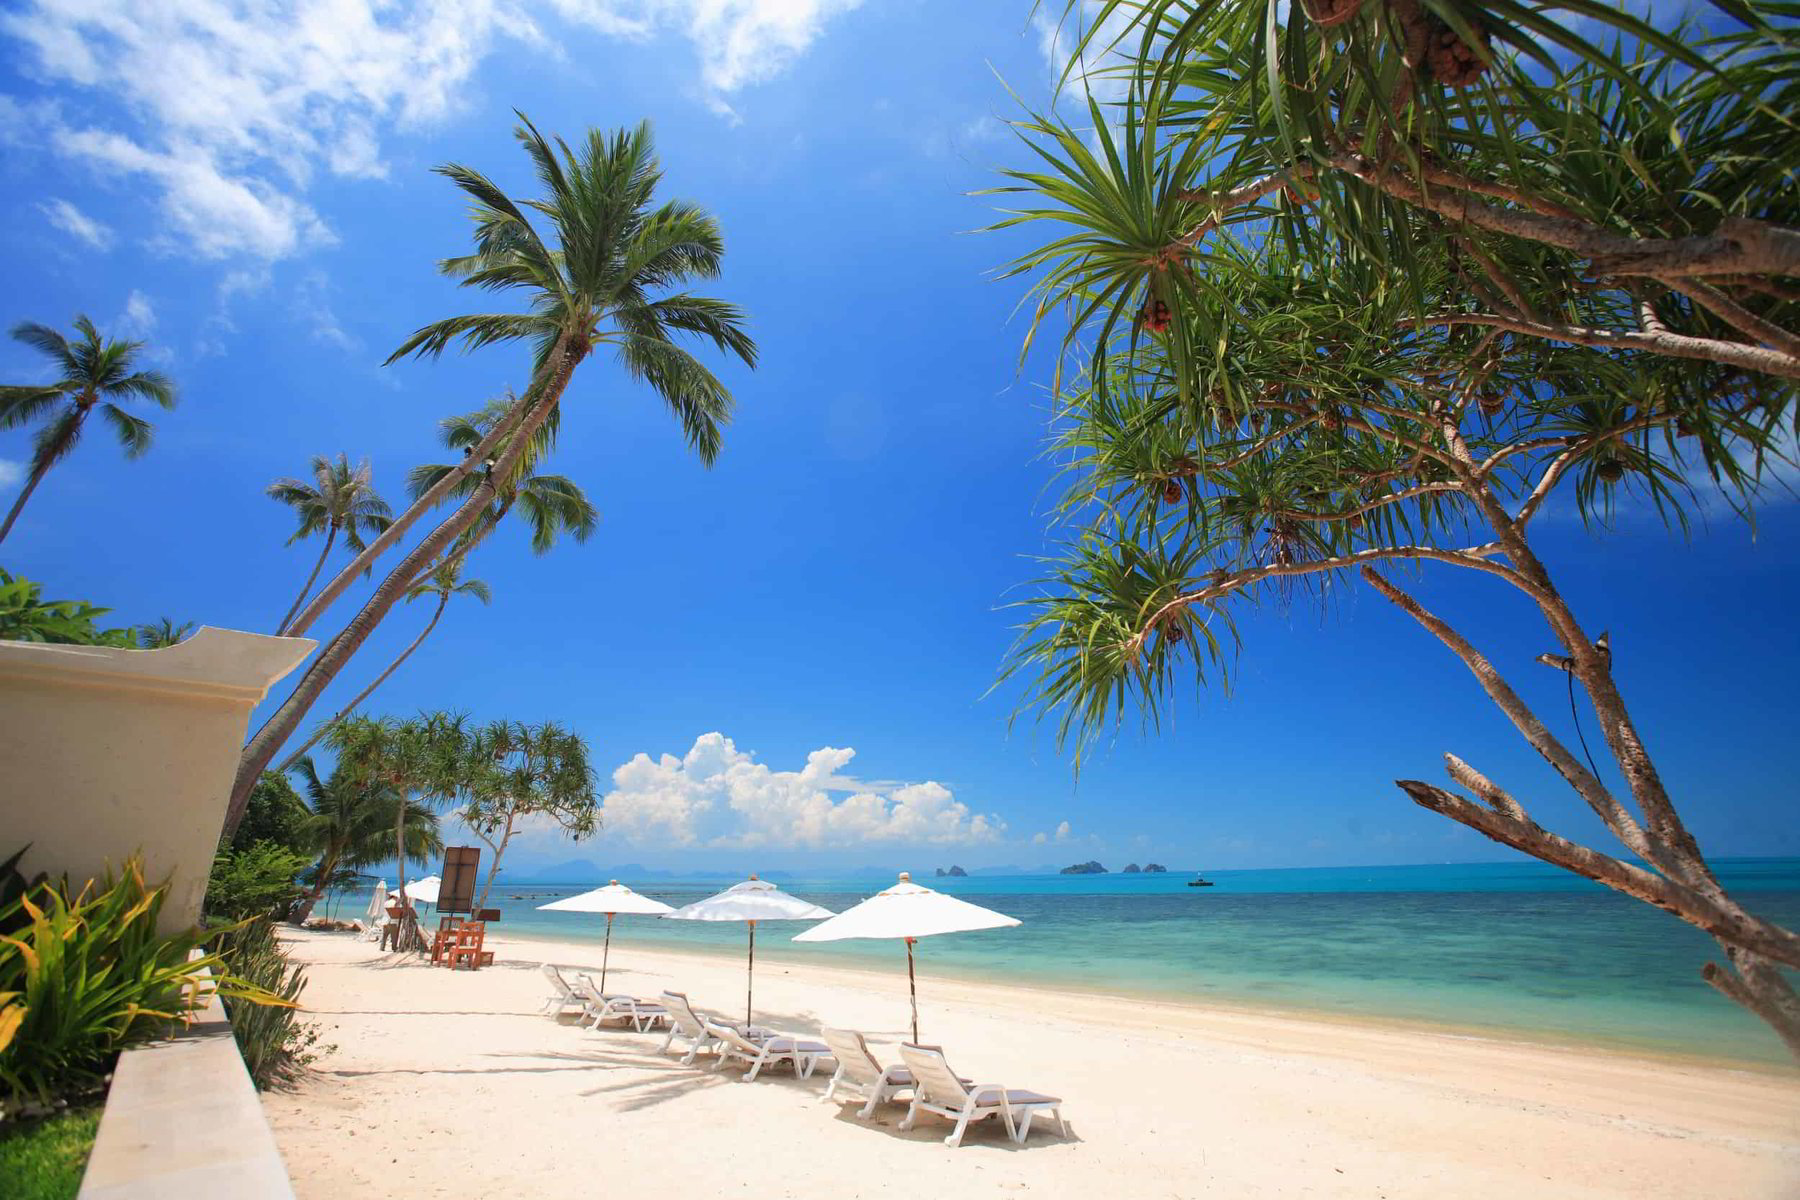 Beaches to visit in Koh Samui